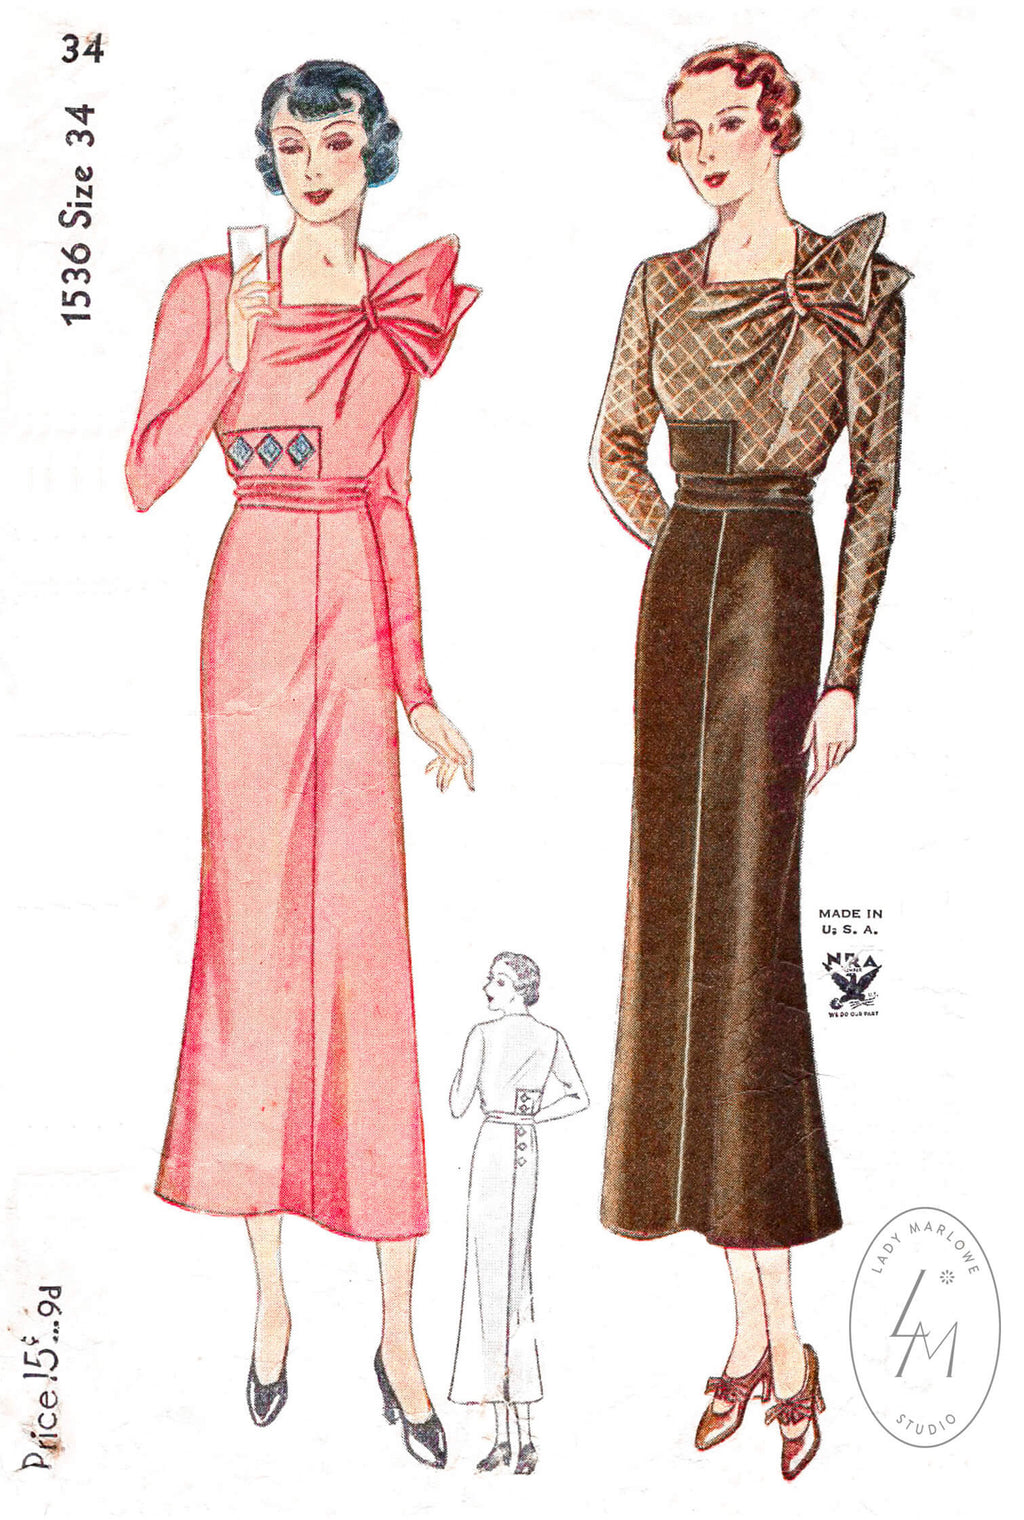 1930s Simplicity 1536 dress pattern vintage sewing pattern